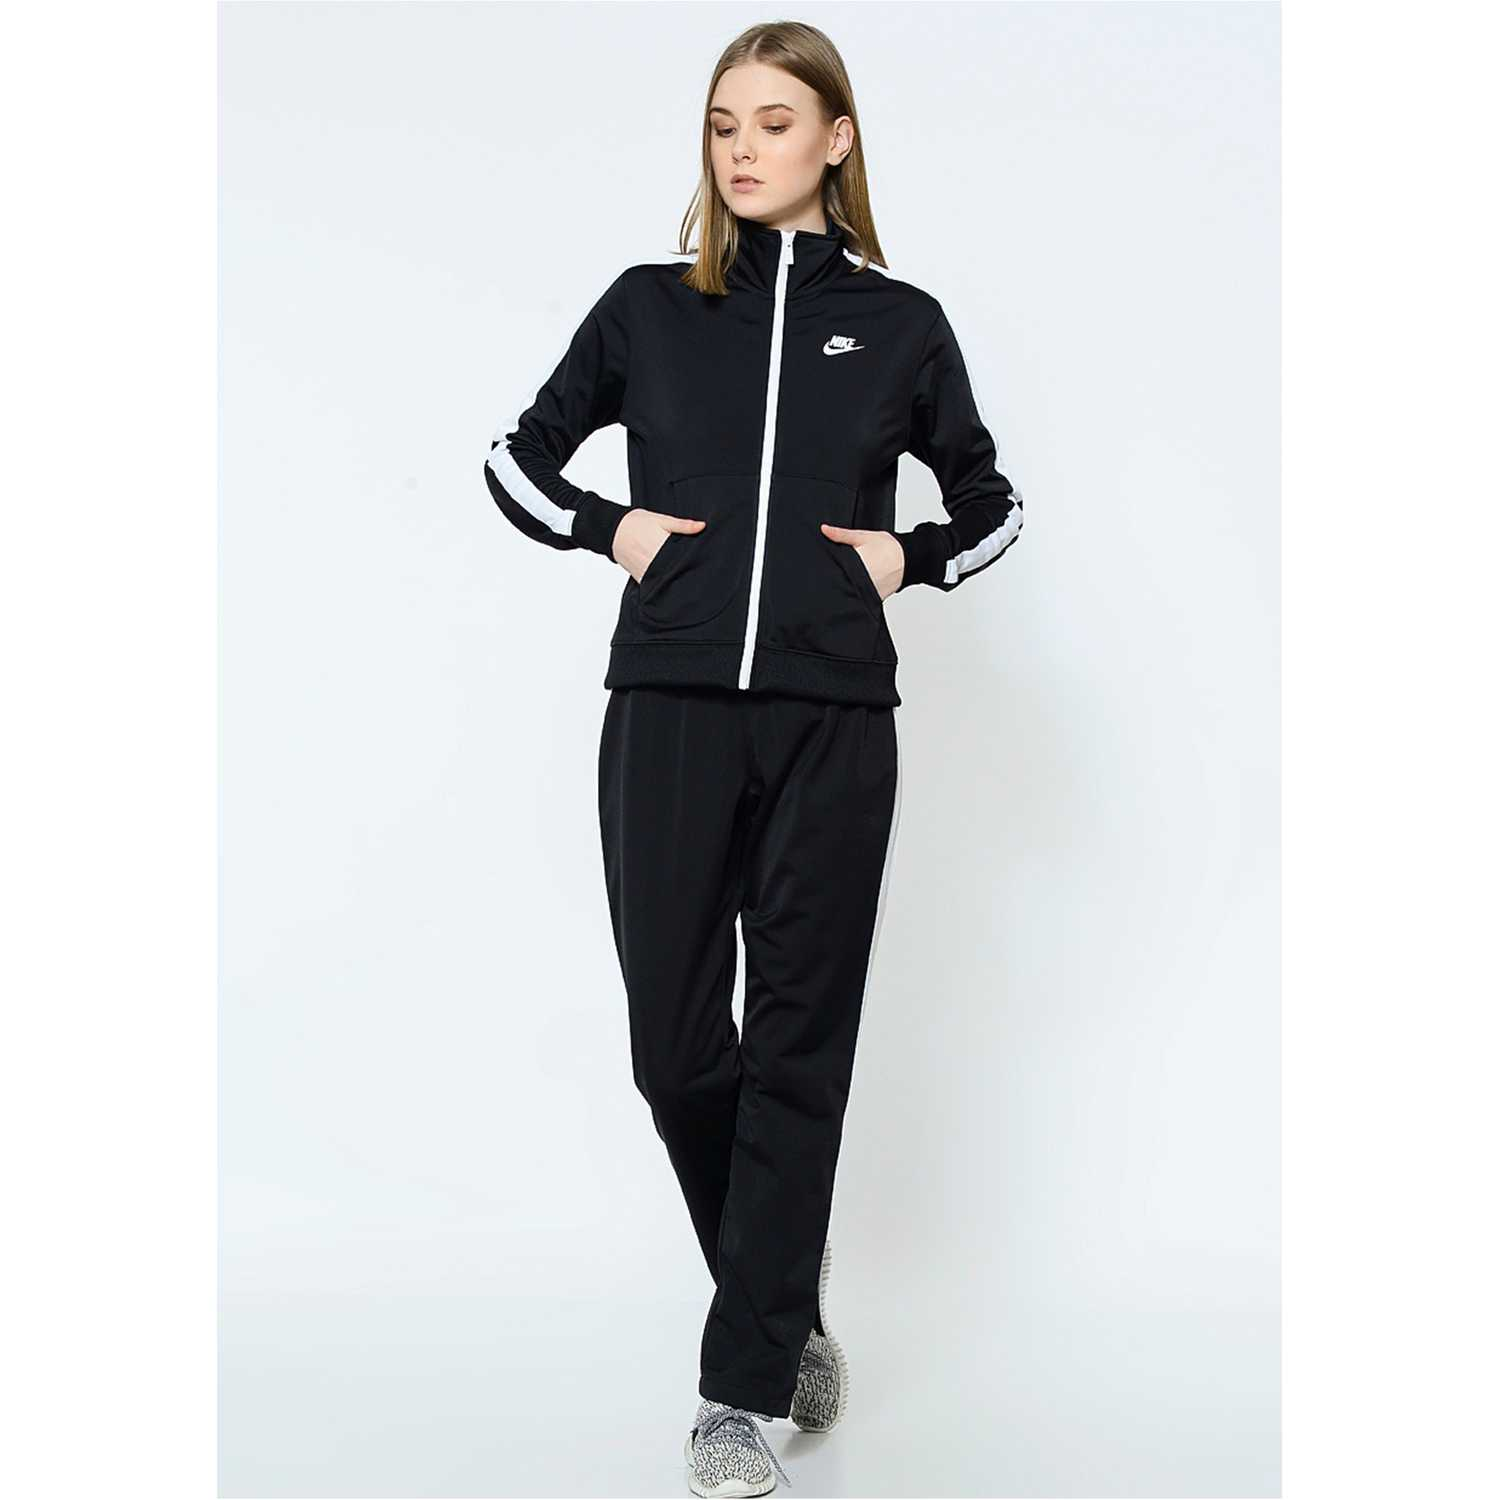 Nike wmns nsw trk suit pk oh Negro / blanco